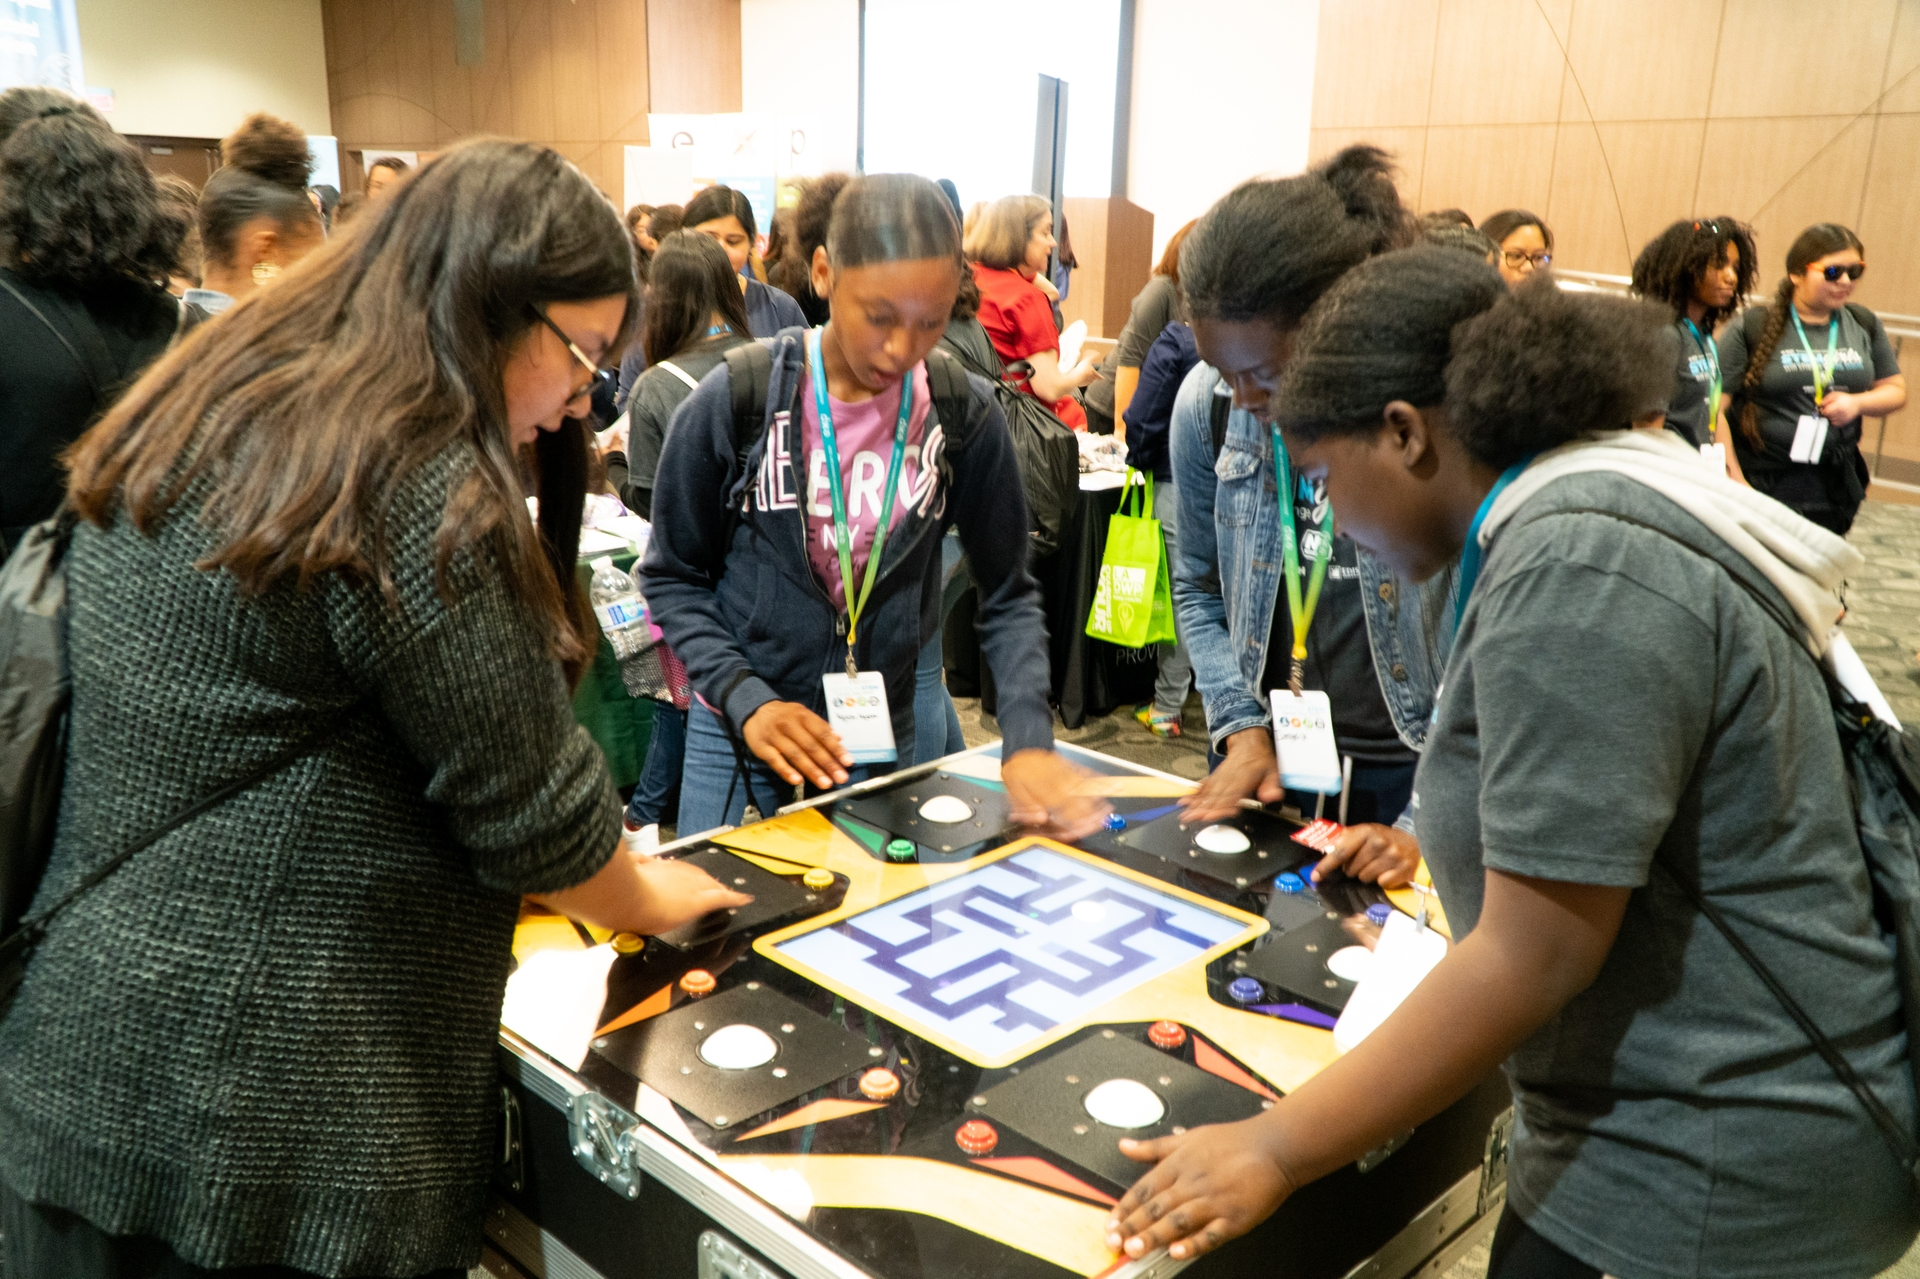 Students have fun at the demonstration exhibits at EXP's Women in STEM Career Day, sponsored by Edison International.